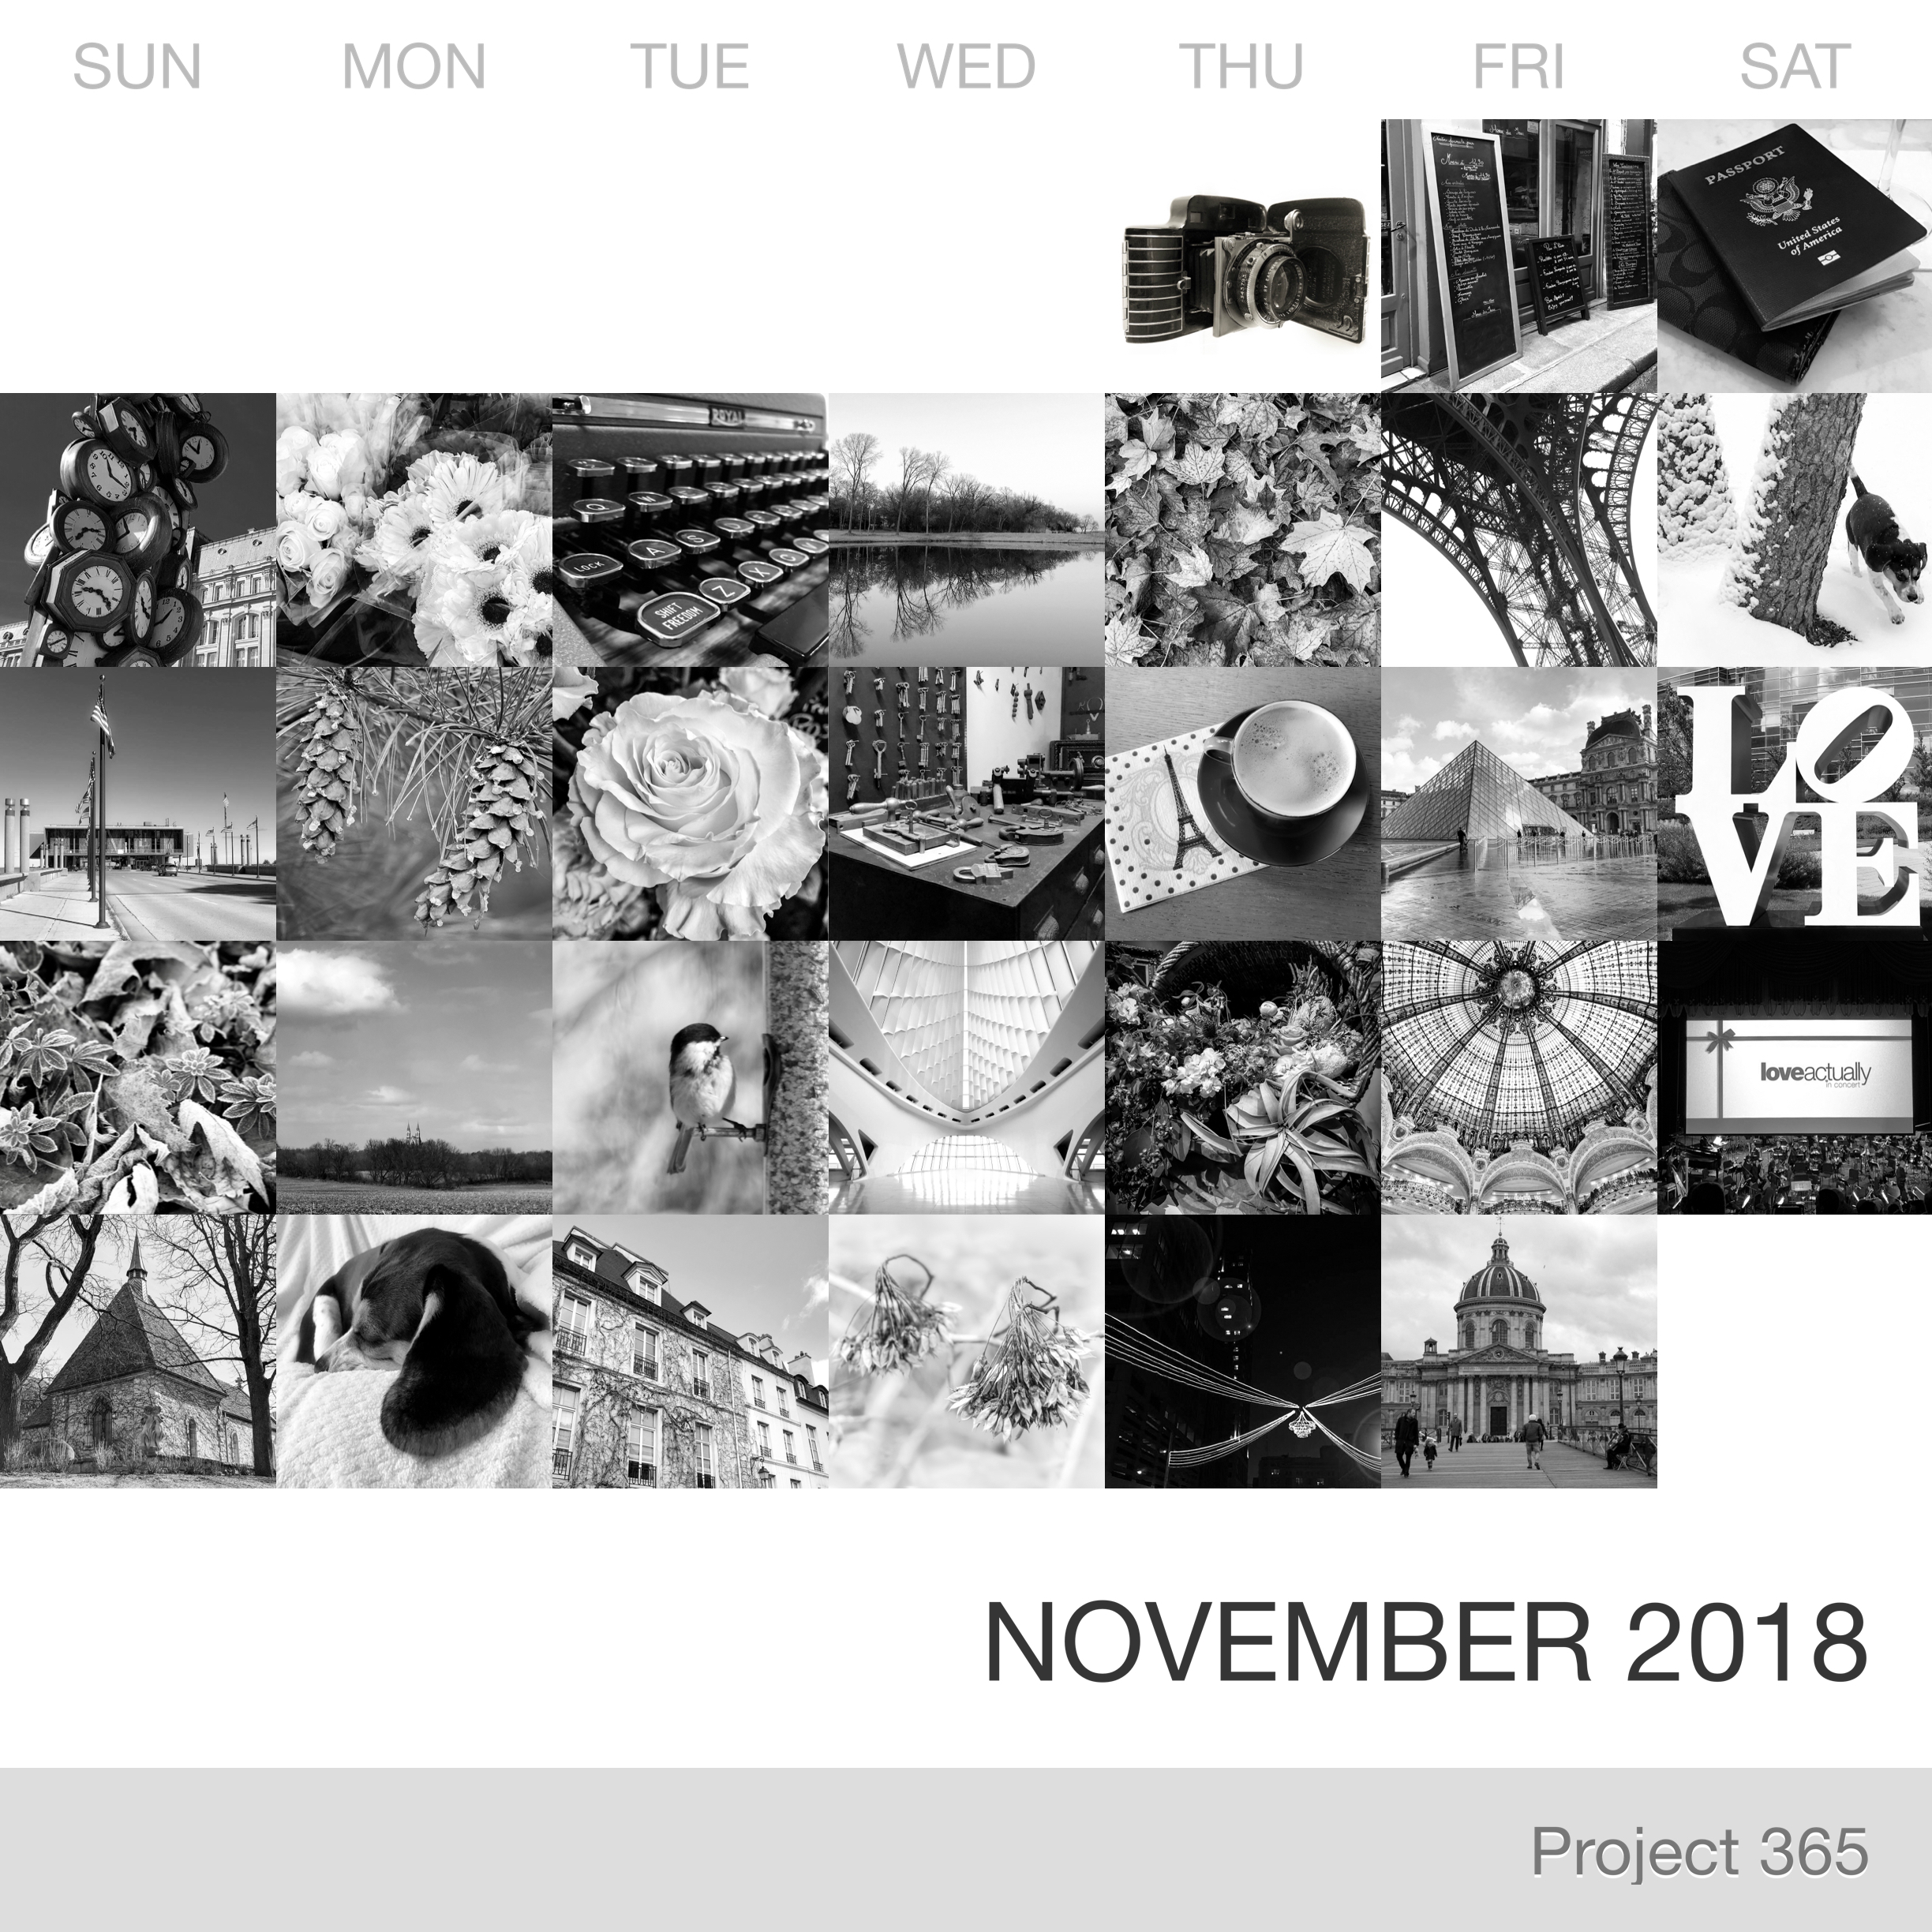 Project 365 _November-2018_Collage.jpg